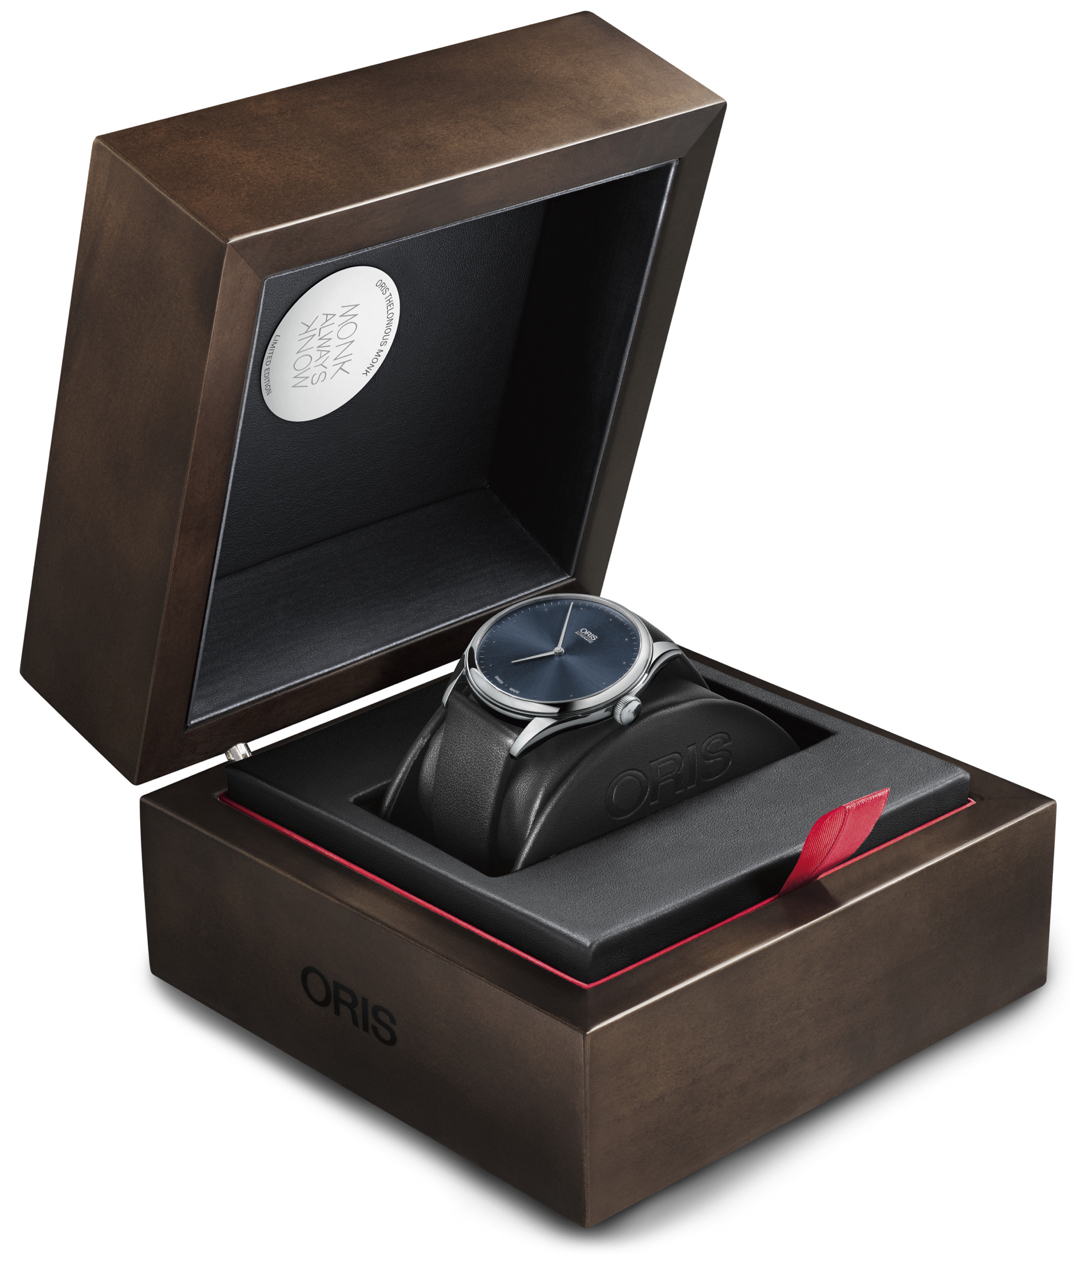 01 733 7712 4085-Set LS - Oris Thelonious Monk Limited Edition